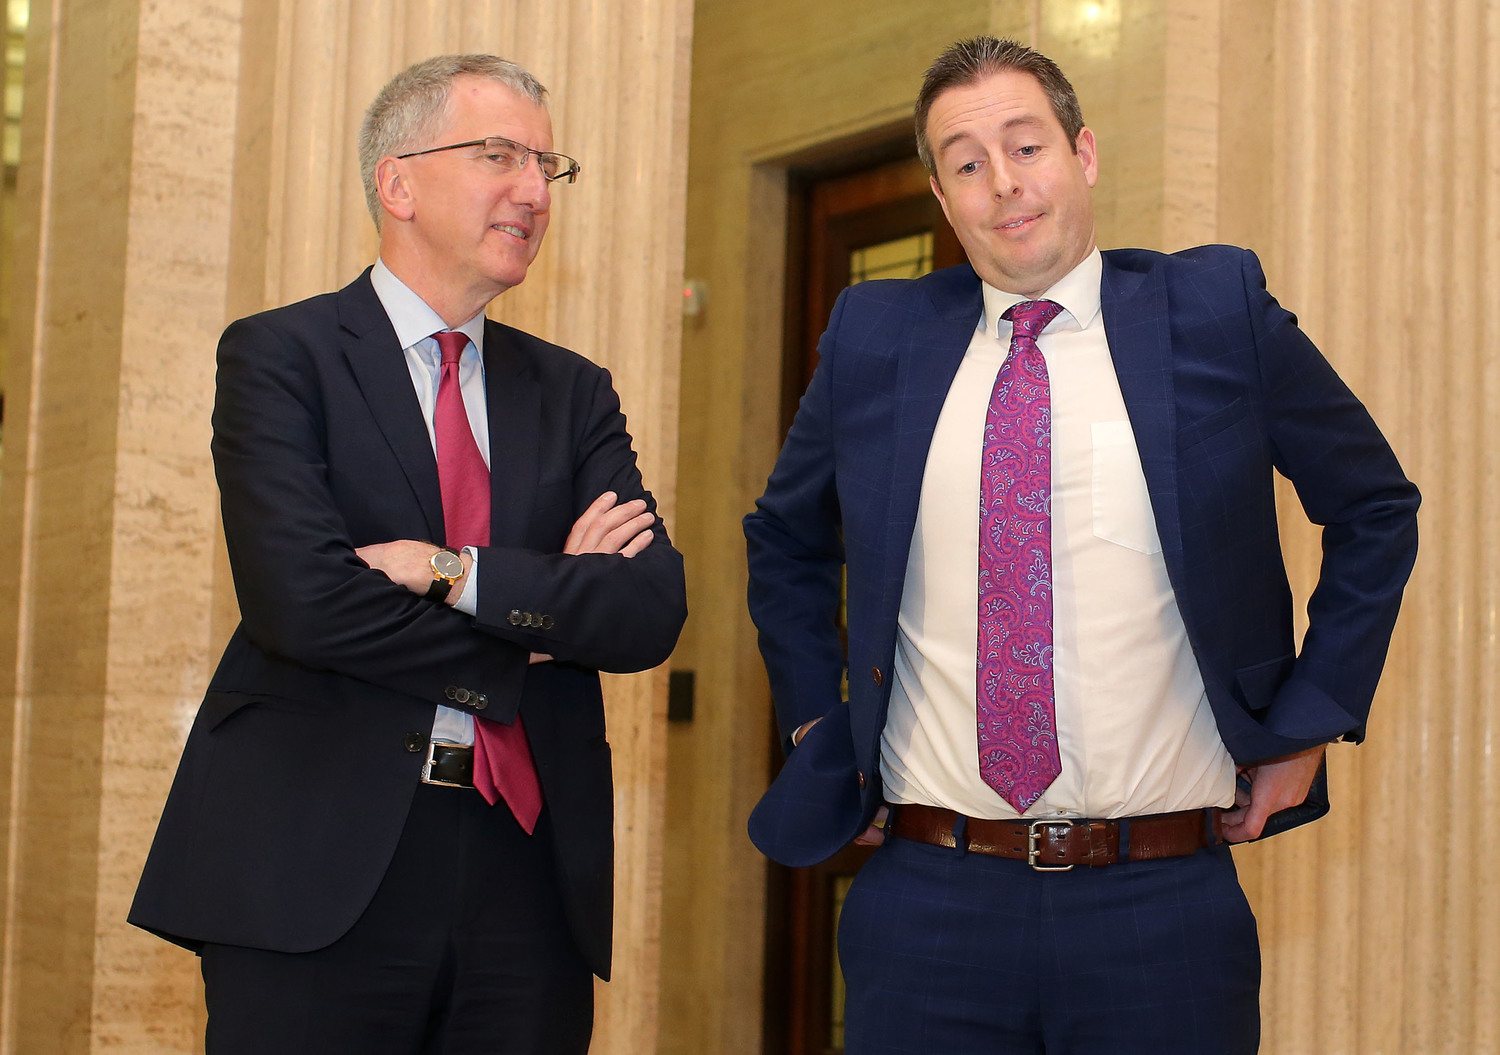 Sinn Féin former Finance Minister Martin Ó Muilleoir, left, and DUP former Communities Minister Paul Givan pictured at Stormont following the resignation of the late Deputy First Minister Martin McGuinness which was, in part, blamed on the decision to close an Irish-language bursary scheme.